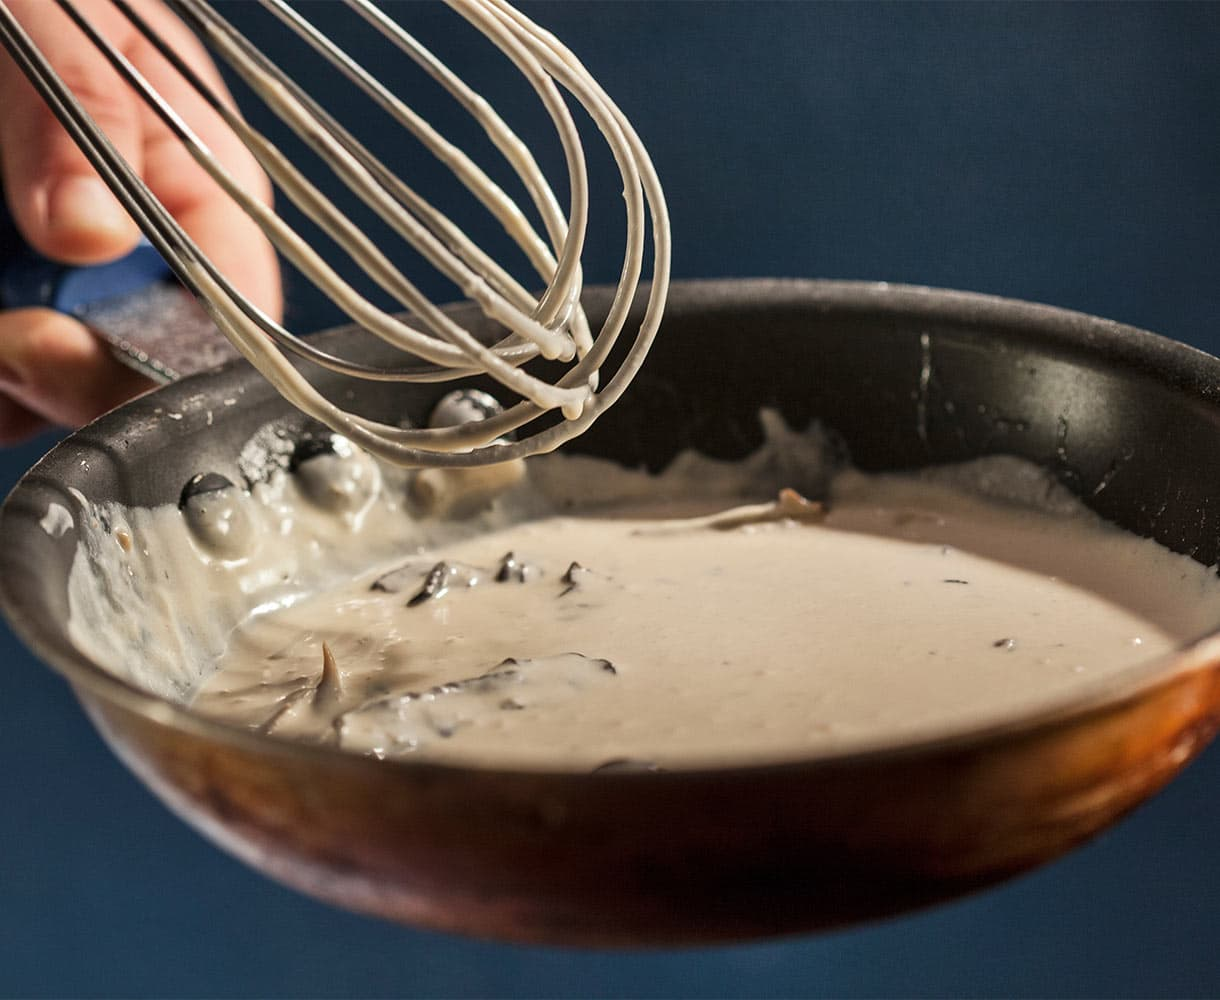 Chef holding whisk and pan of fresh sauce